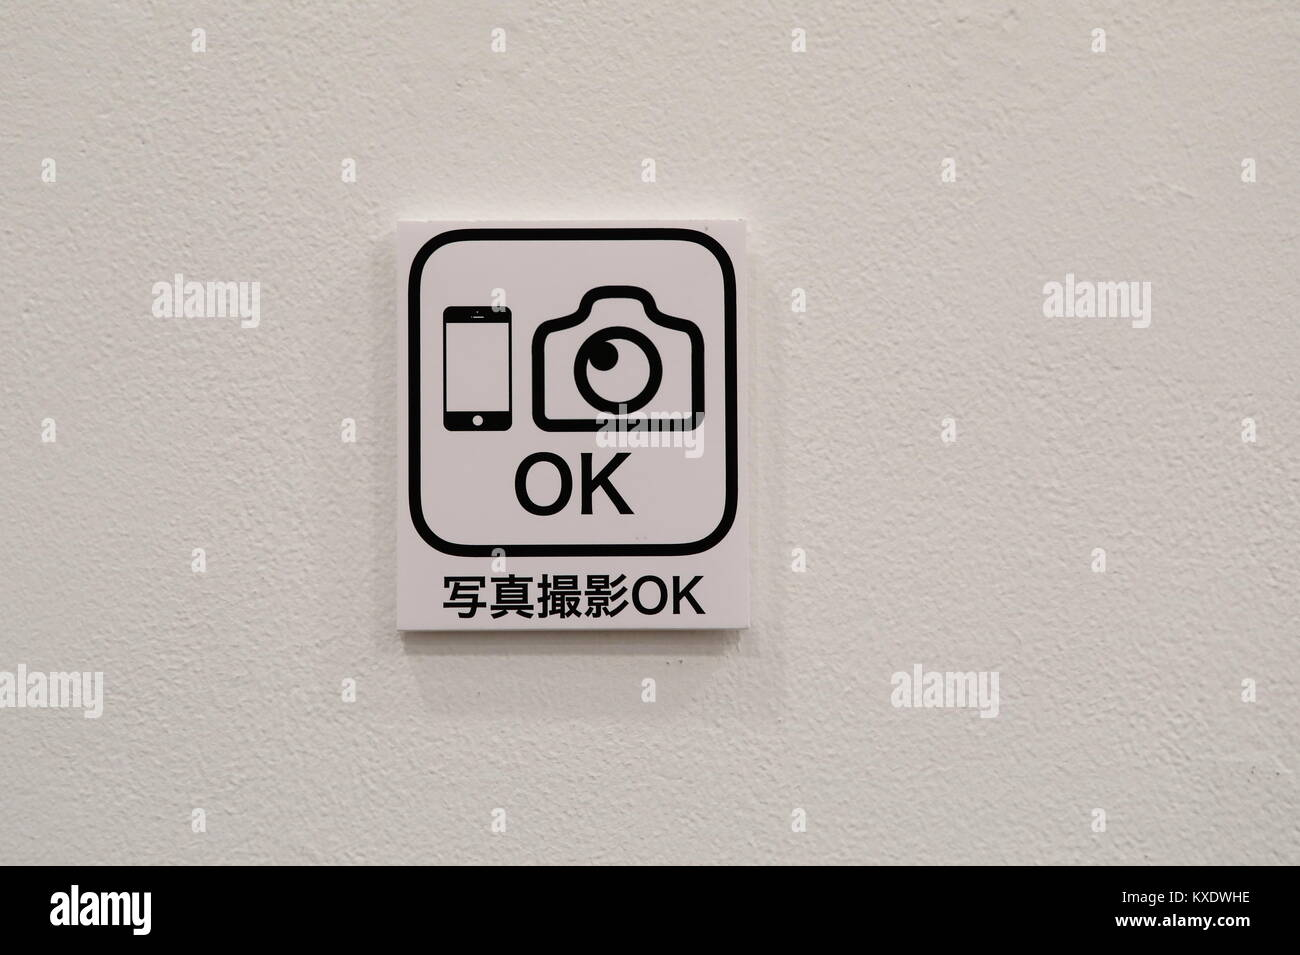 Photography permitted sign in Japanese. Translation: Photography permitted. - Stock Image